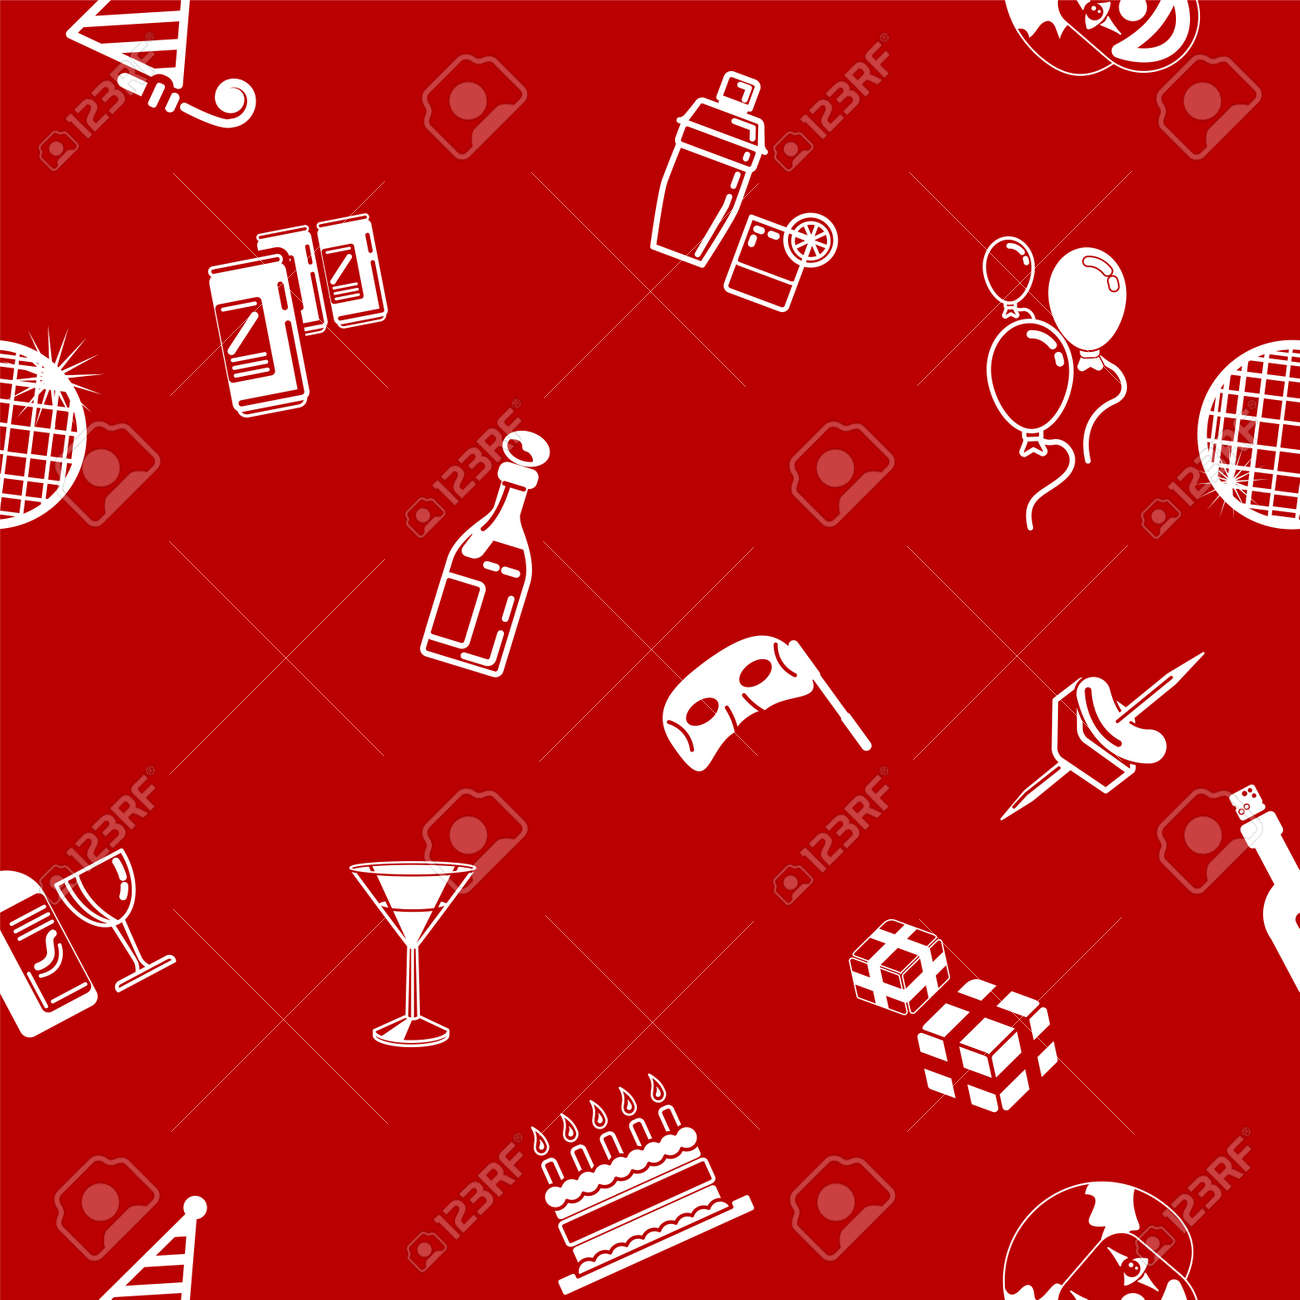 A repeating seamless party background tile texture with lots of drawings of different party icons Stock Vector - 17174630